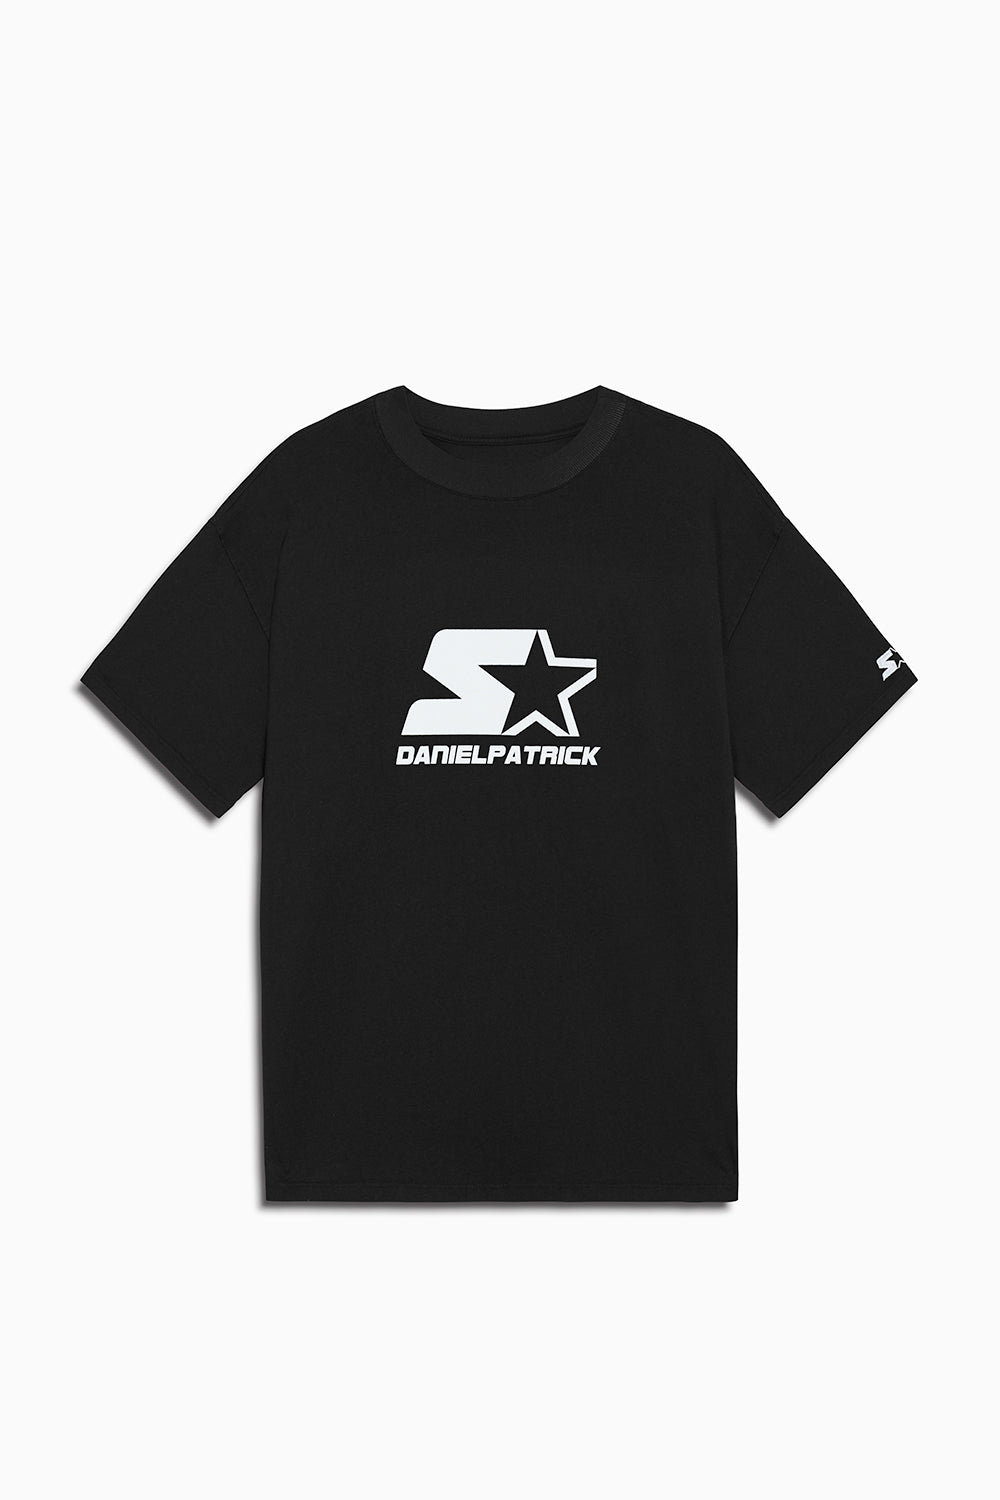 dp starter logo tee in black/white by daniel patrick x starter